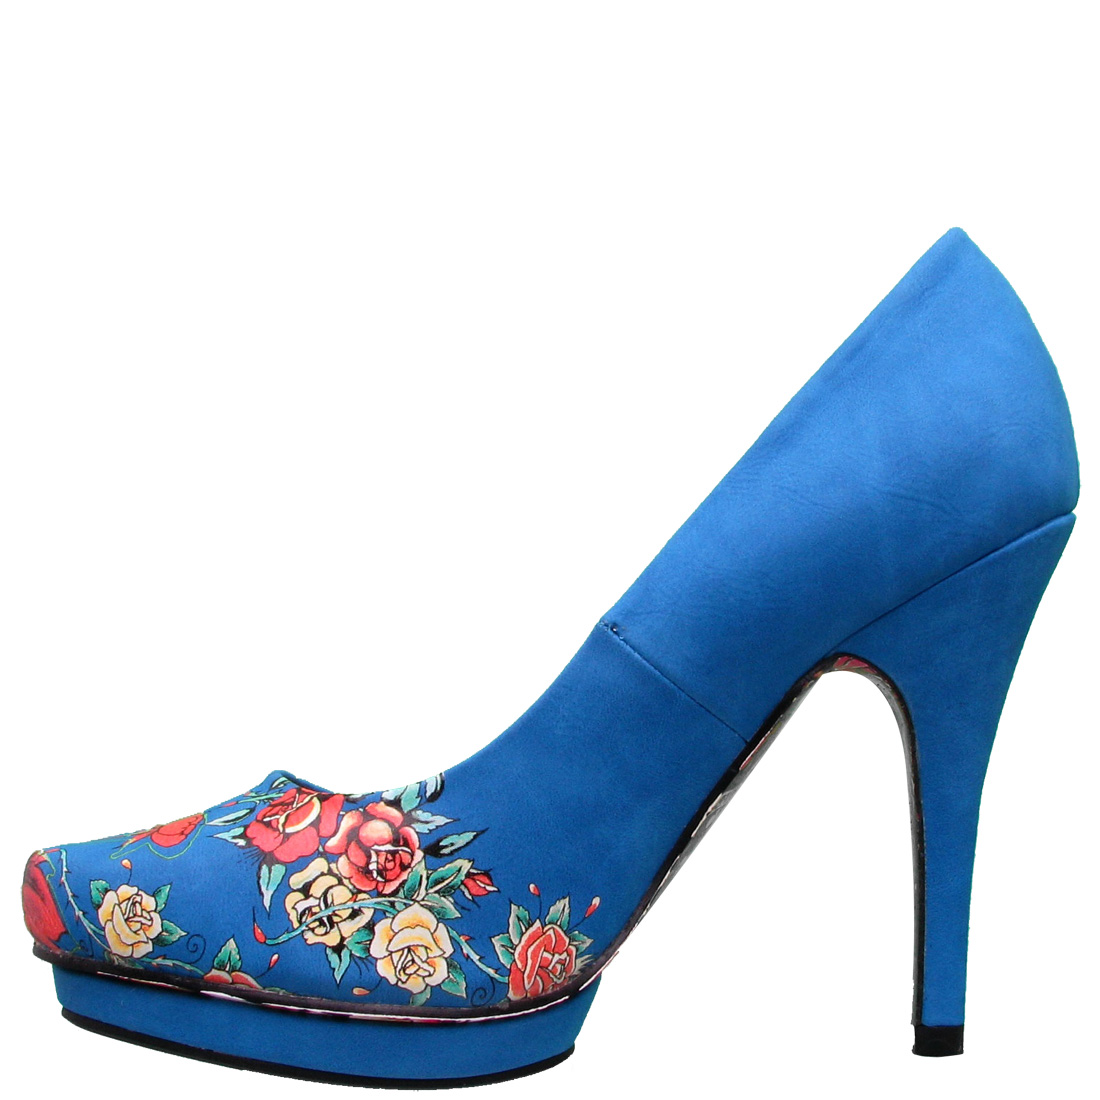 Ed Hardy Dirty Gold Pump Shoe for Women - Blue